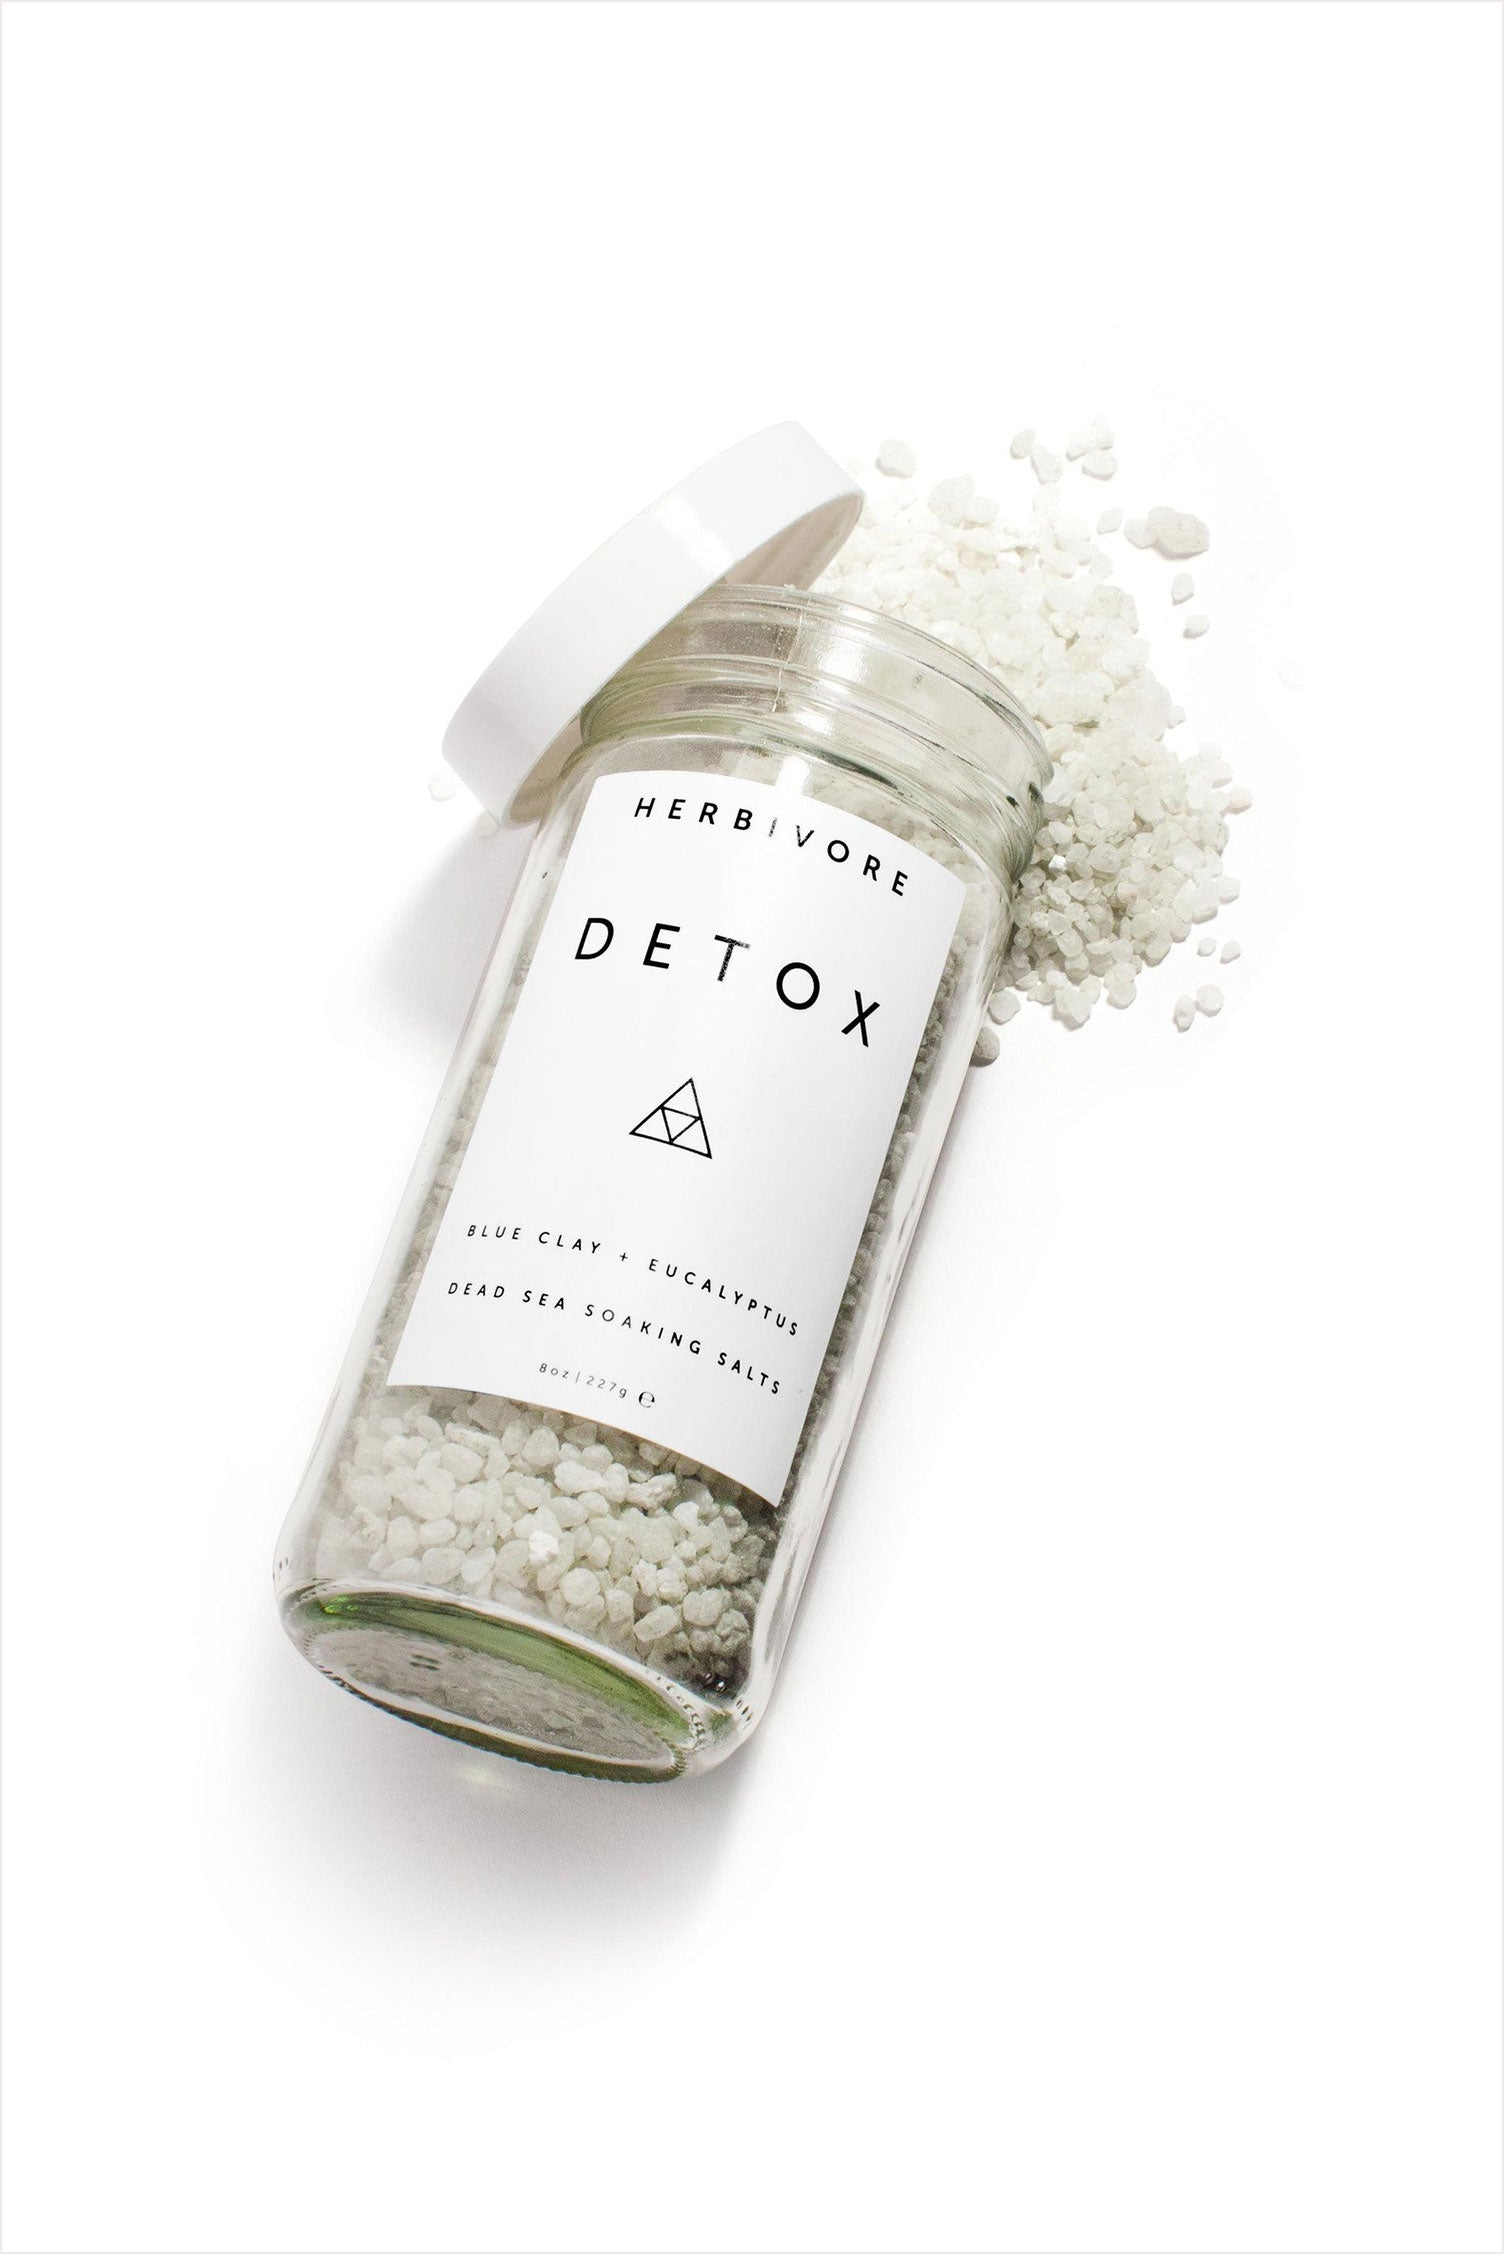 Herbivore Detox Soaking Salts